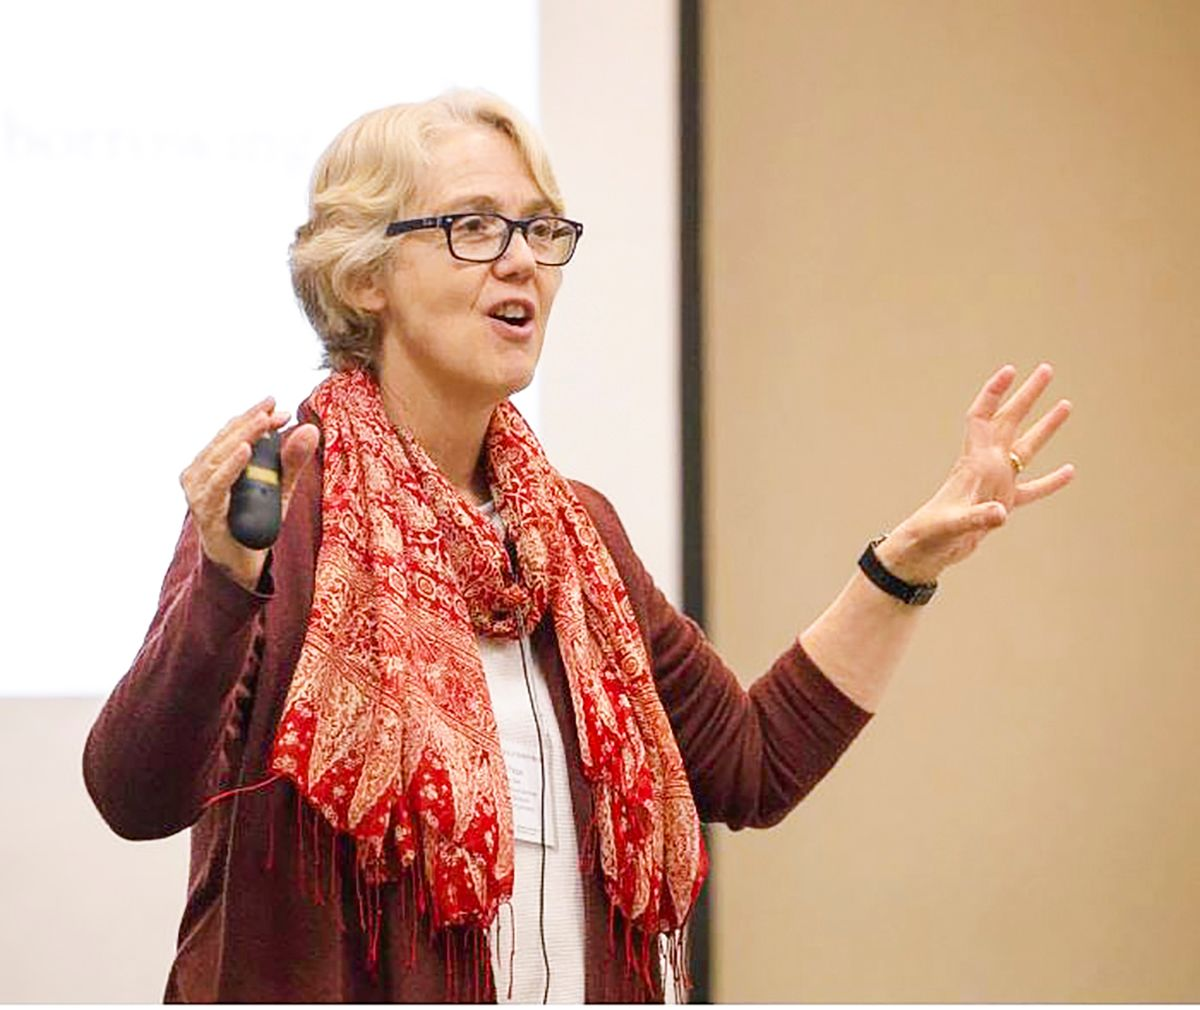 Lynne Paine in front of a projector screen, speaking and holding a PowerPoint clicker.